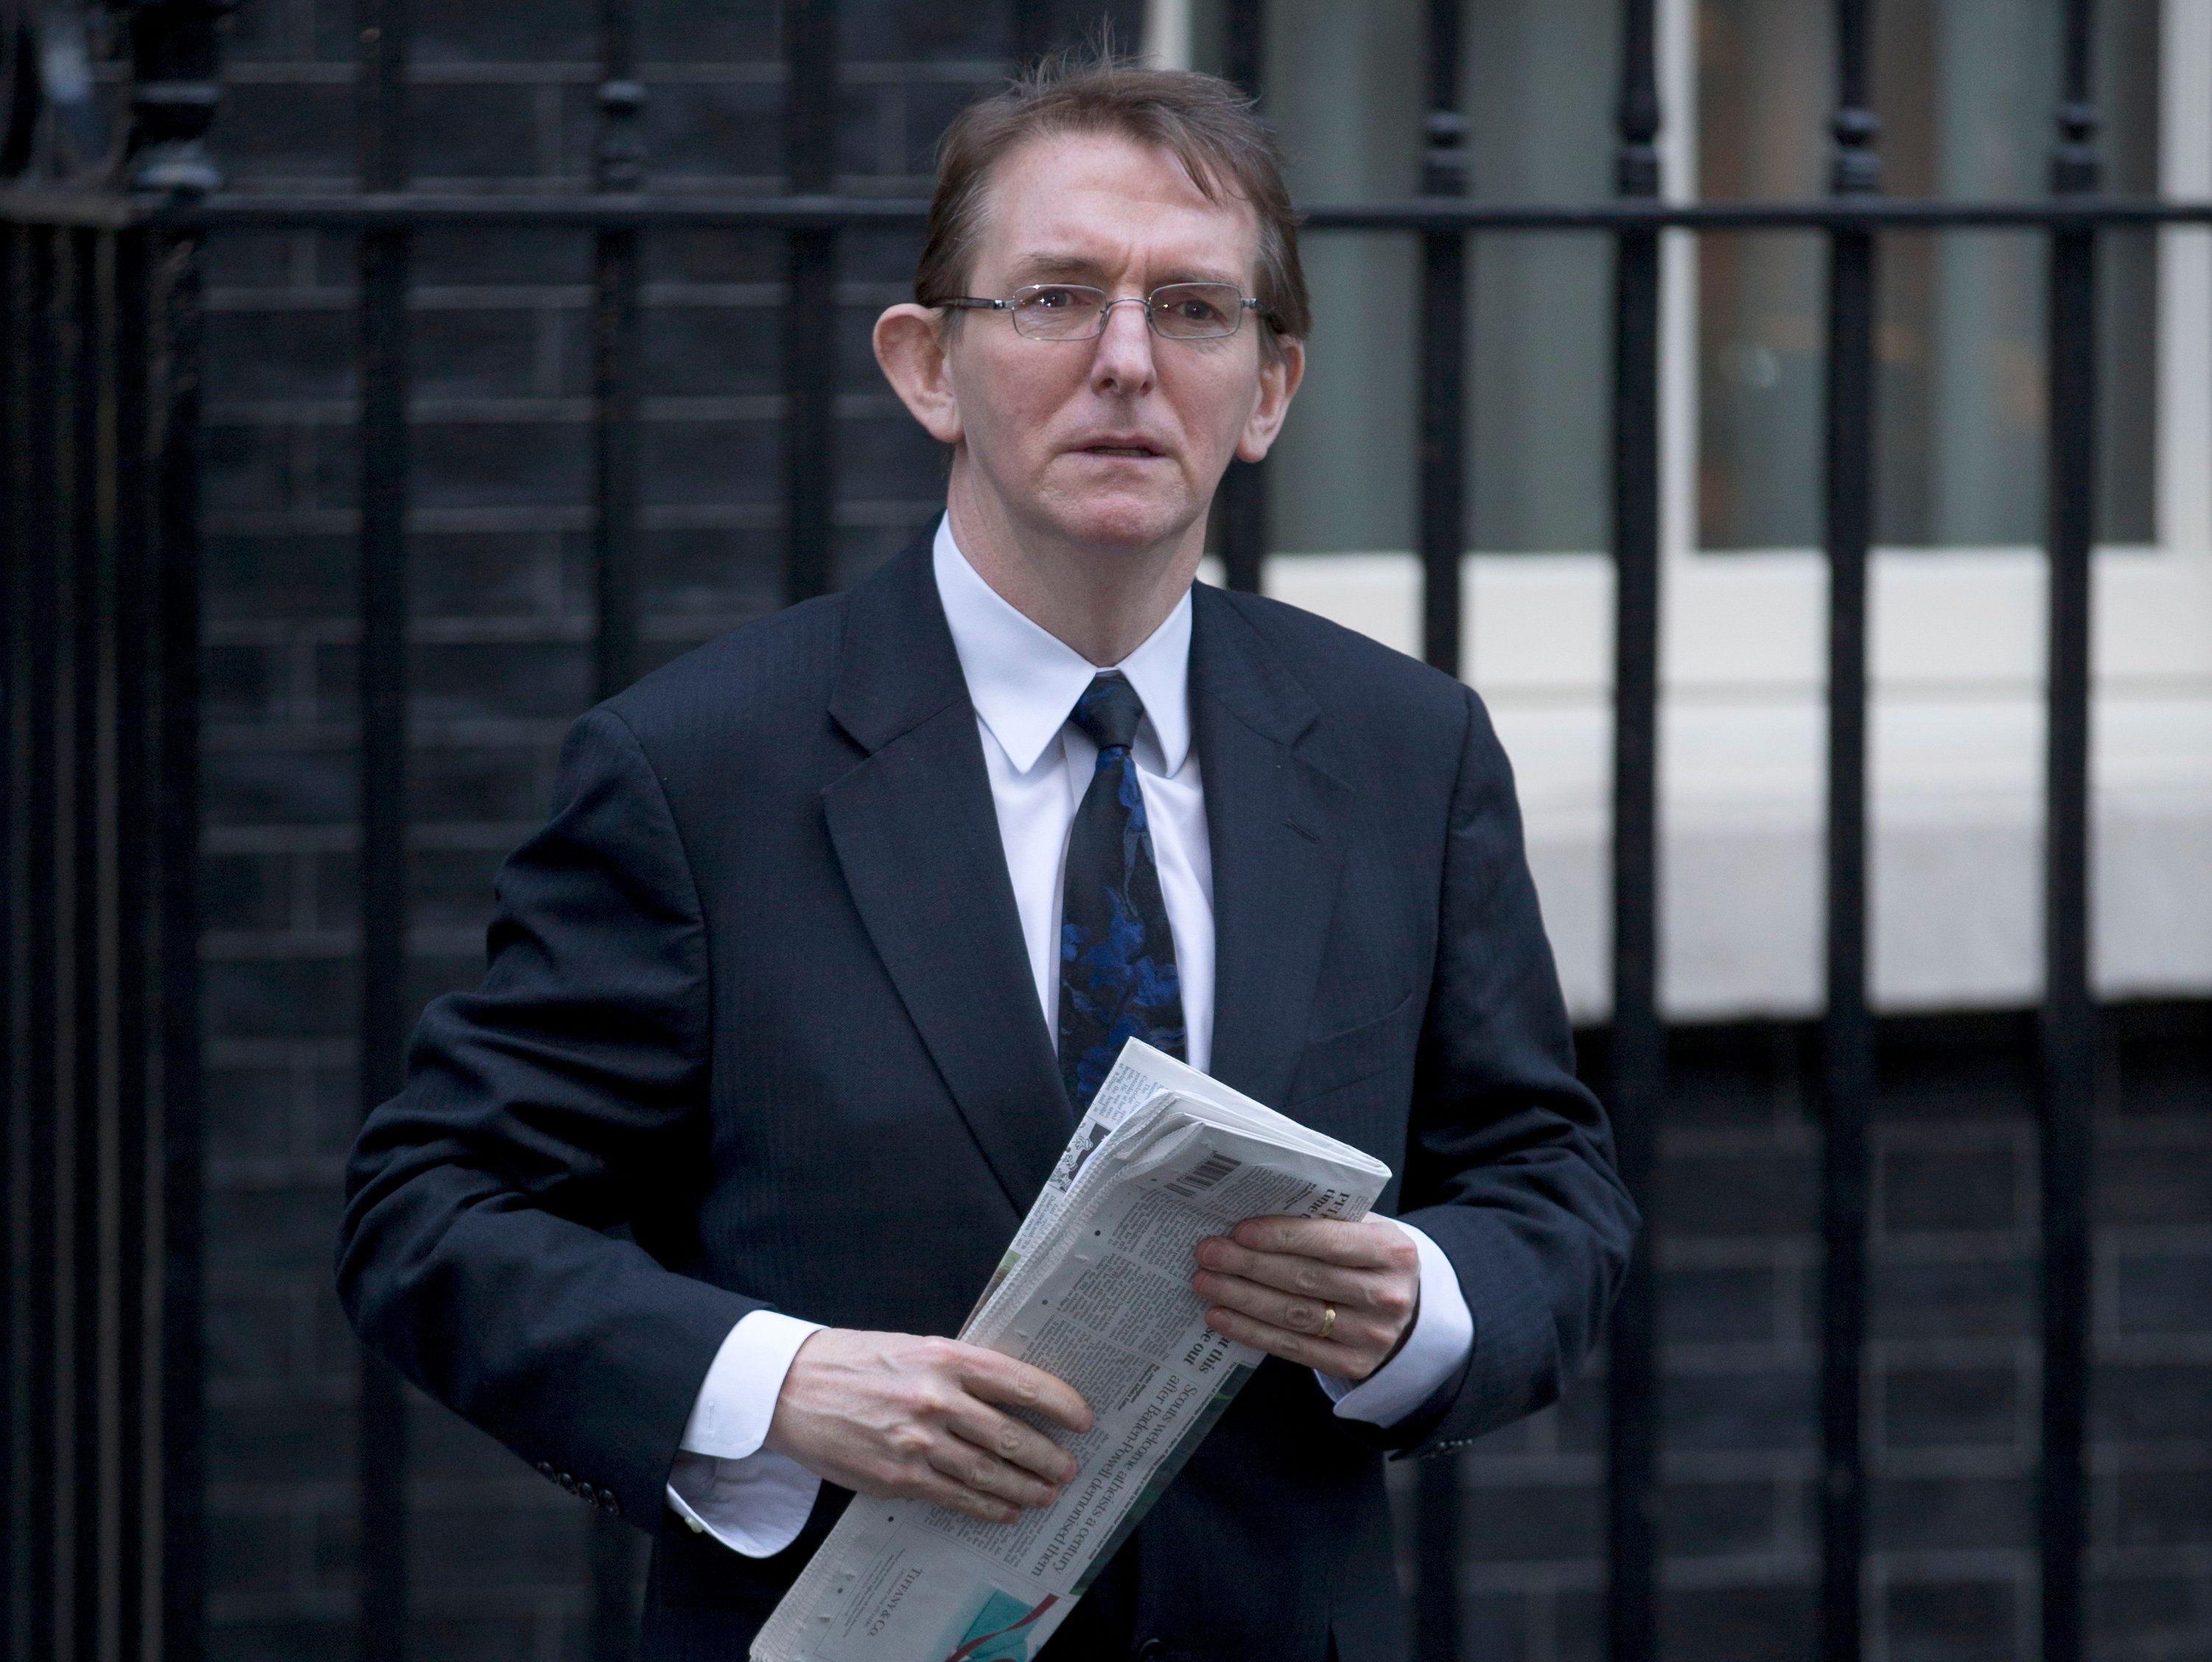 Sun Editor Attacks 'Insane' Leveson Inquiry Reform That Could Be